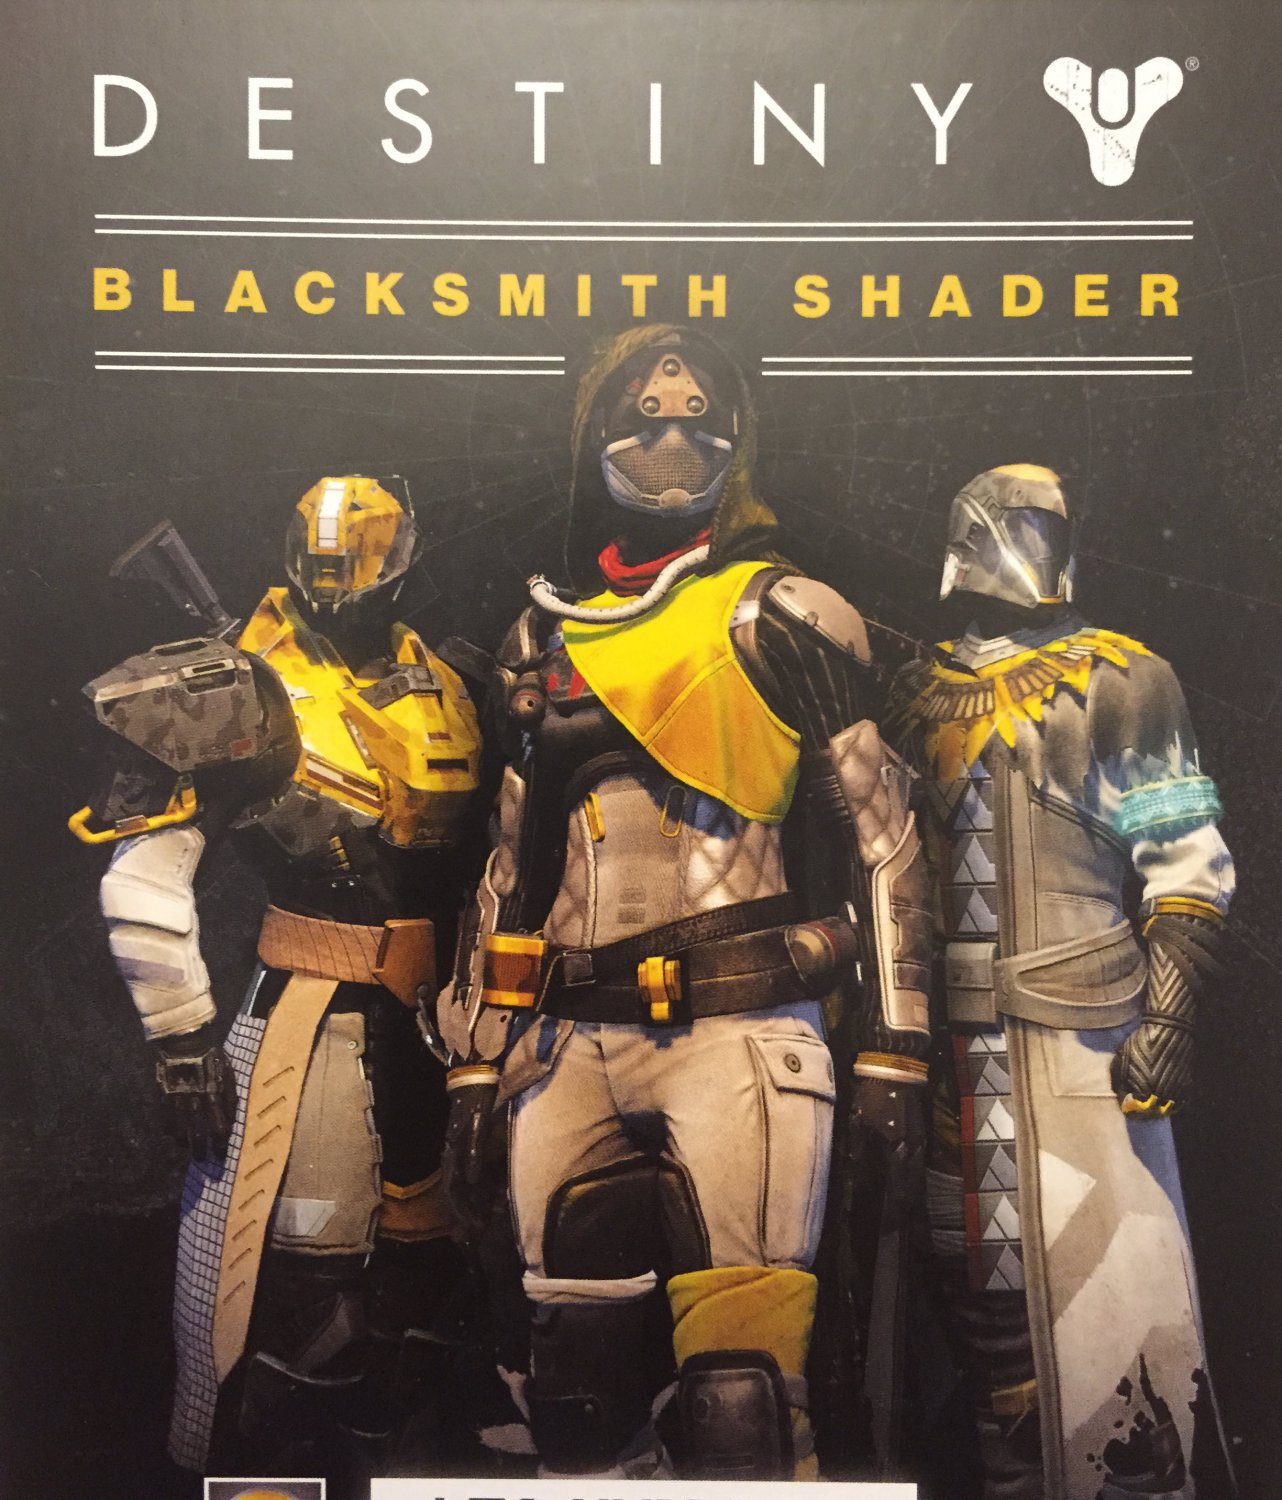 E3 2015 exclusive destiny blacksmith shader unlock code and destiny